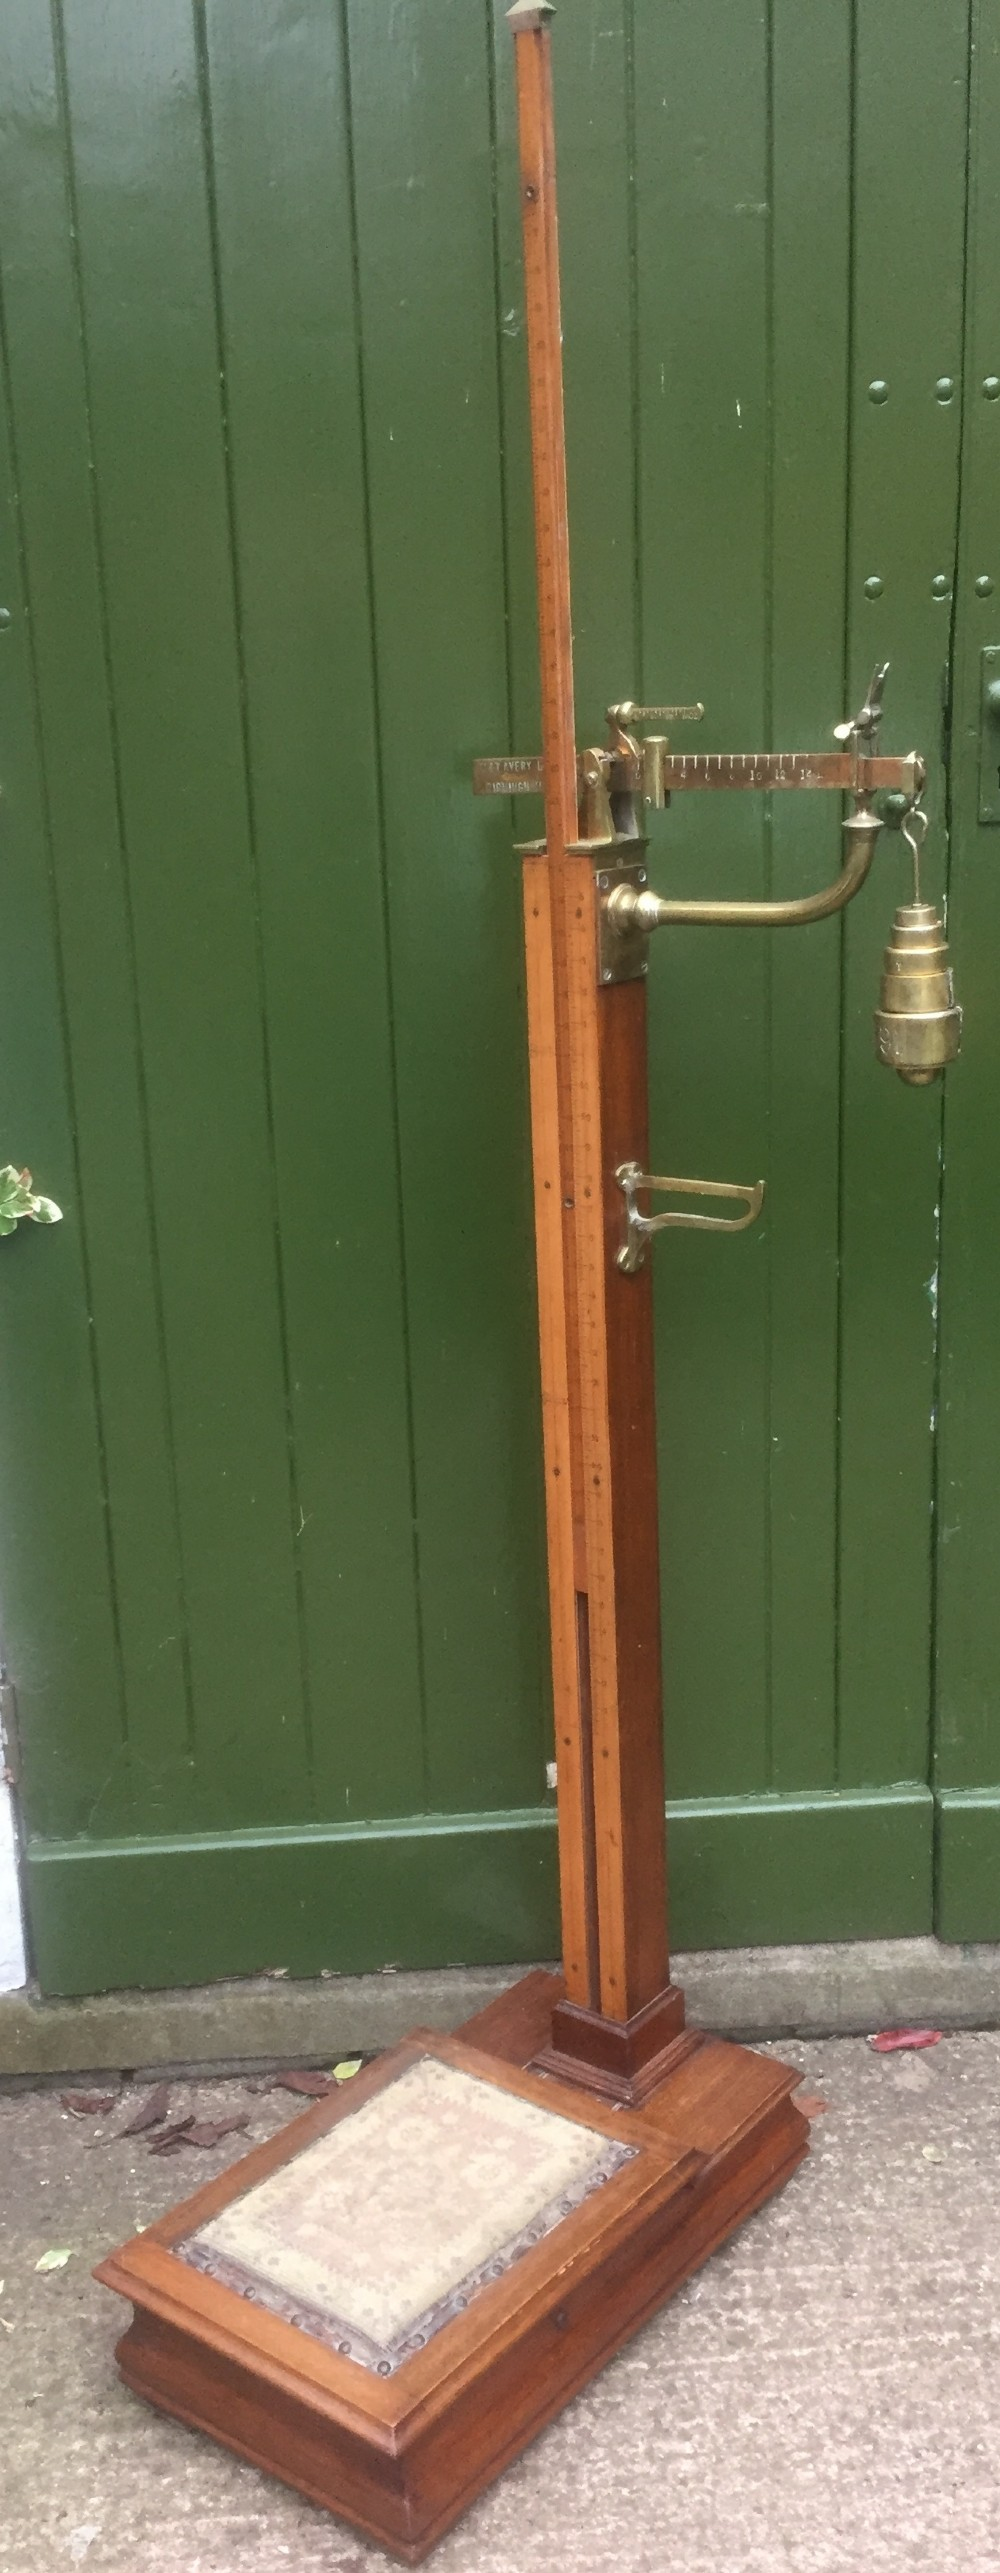 a set of late victorian or edwardian oak and brass floorstanding scales by w t avery ltd birmingham